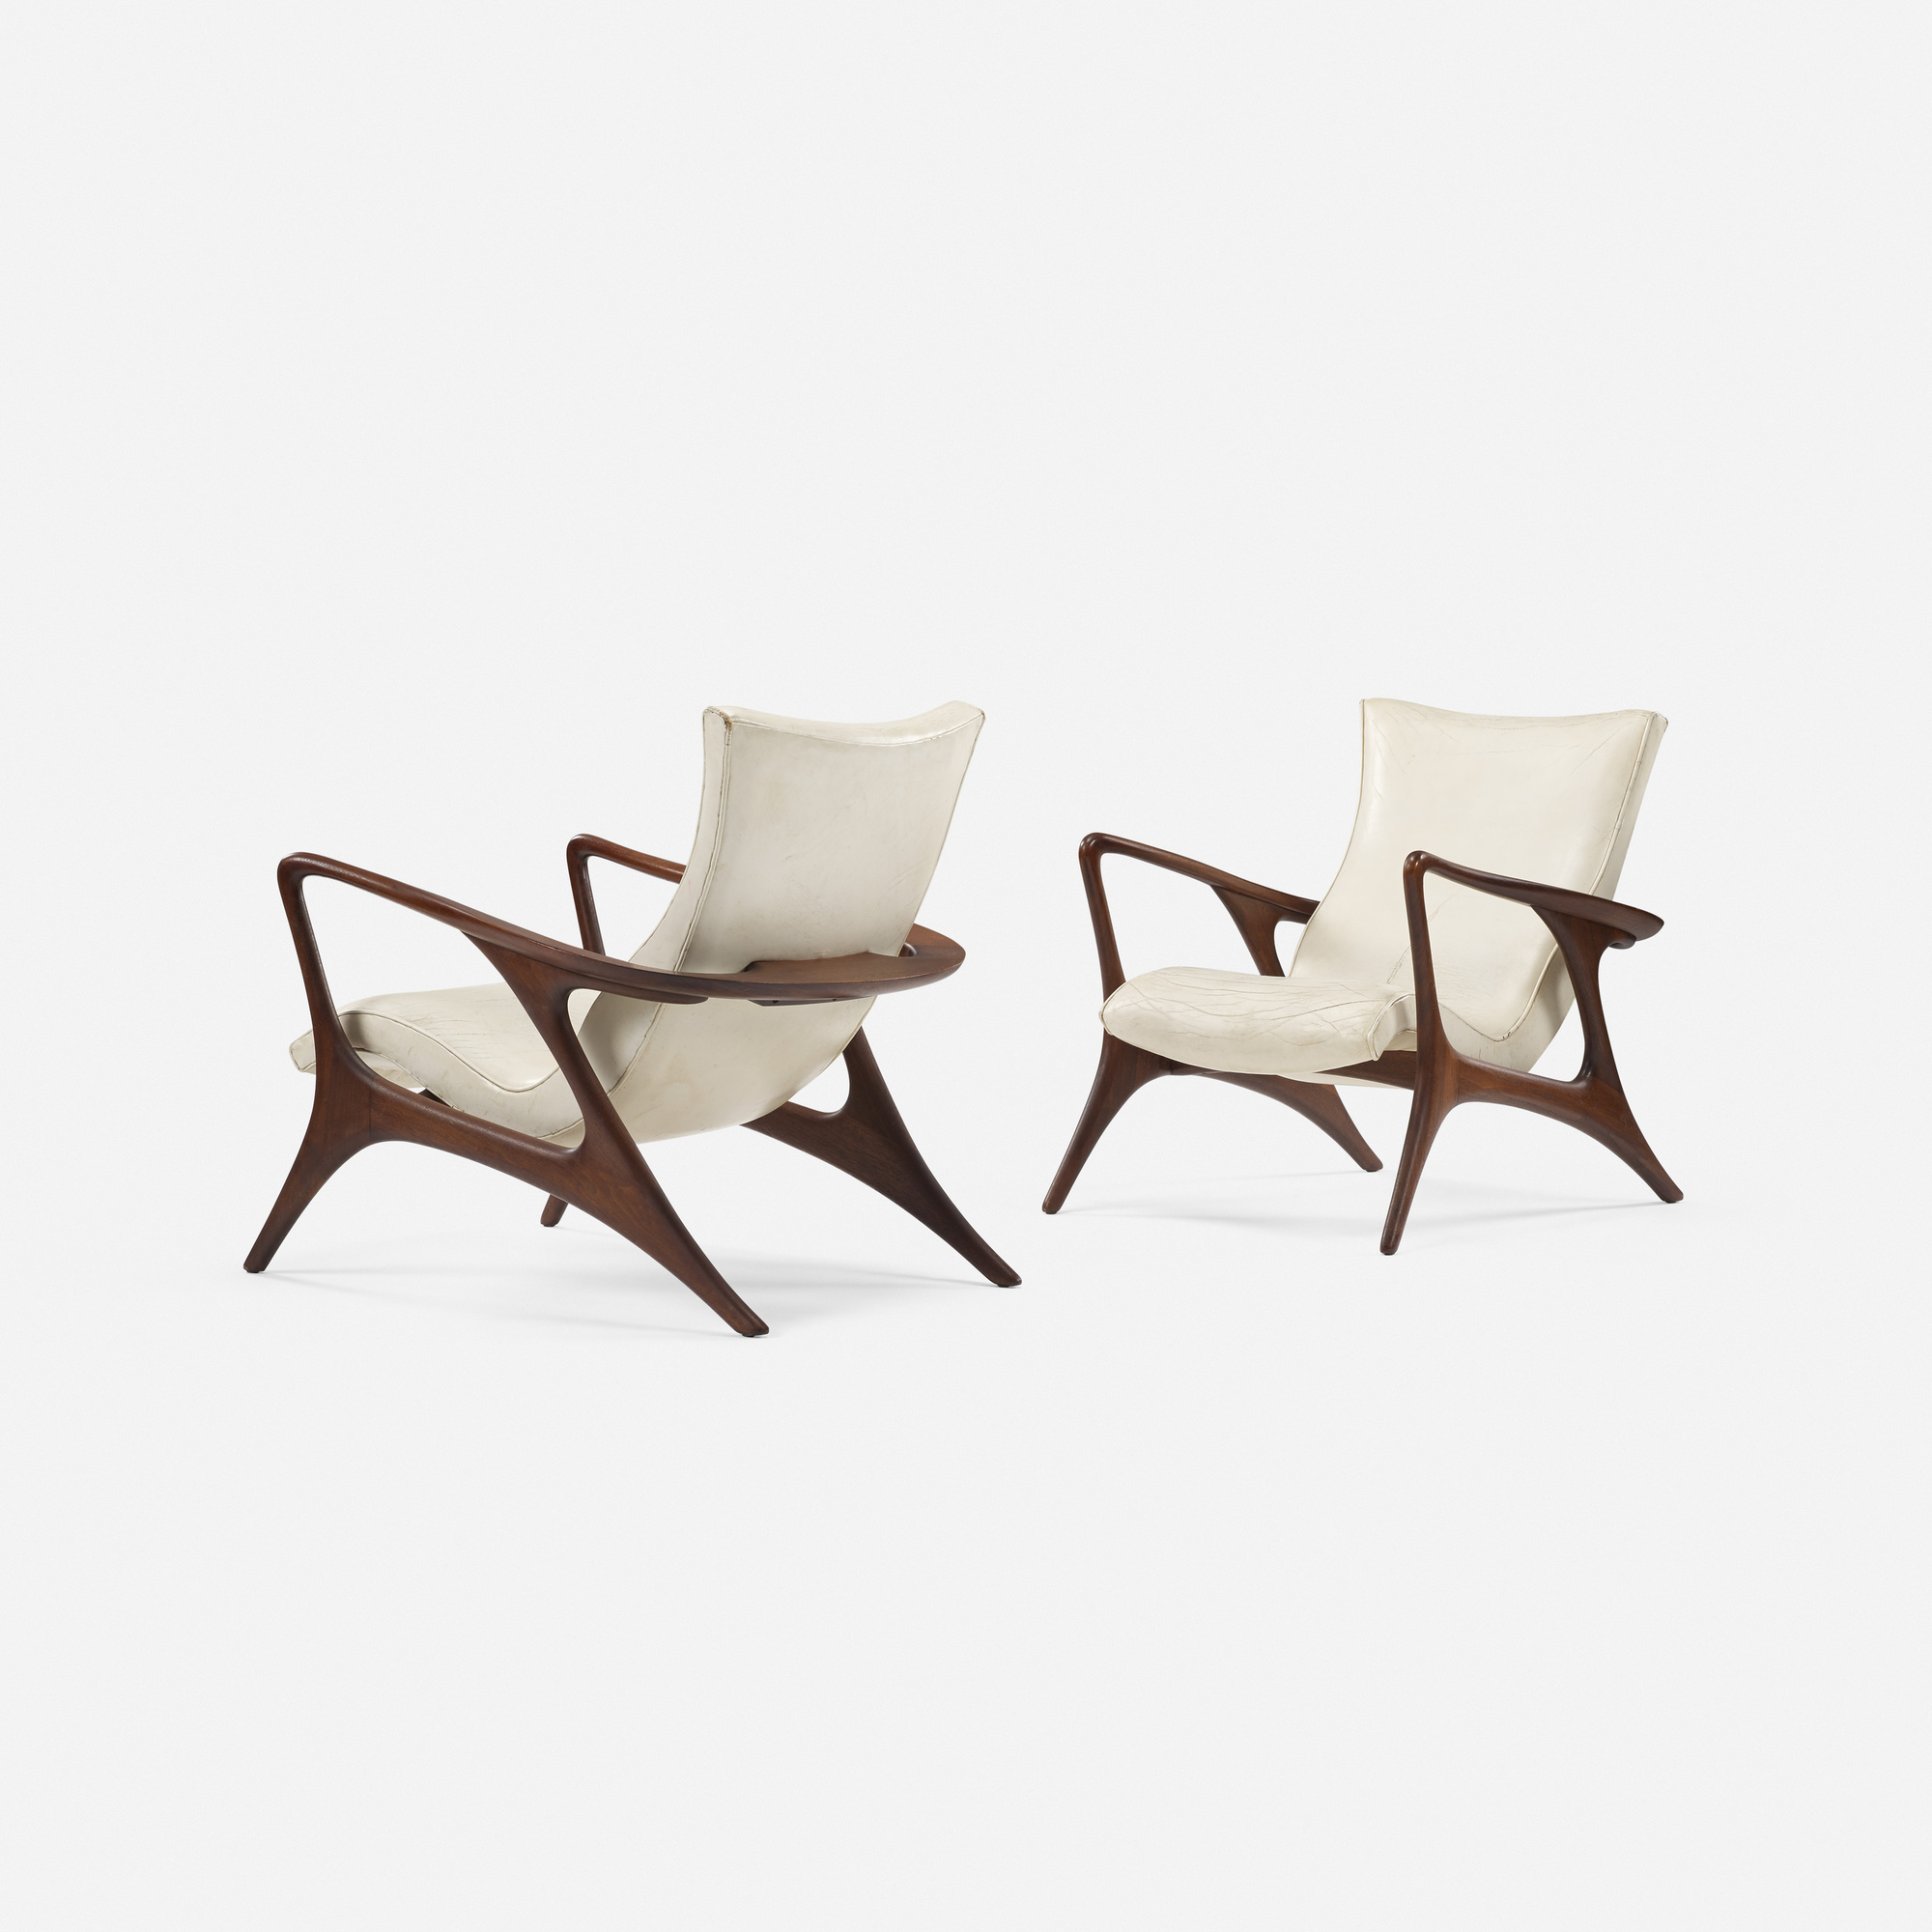 358: Vladimir Kagan / Contour lounge chairs, pair (1 of 5)